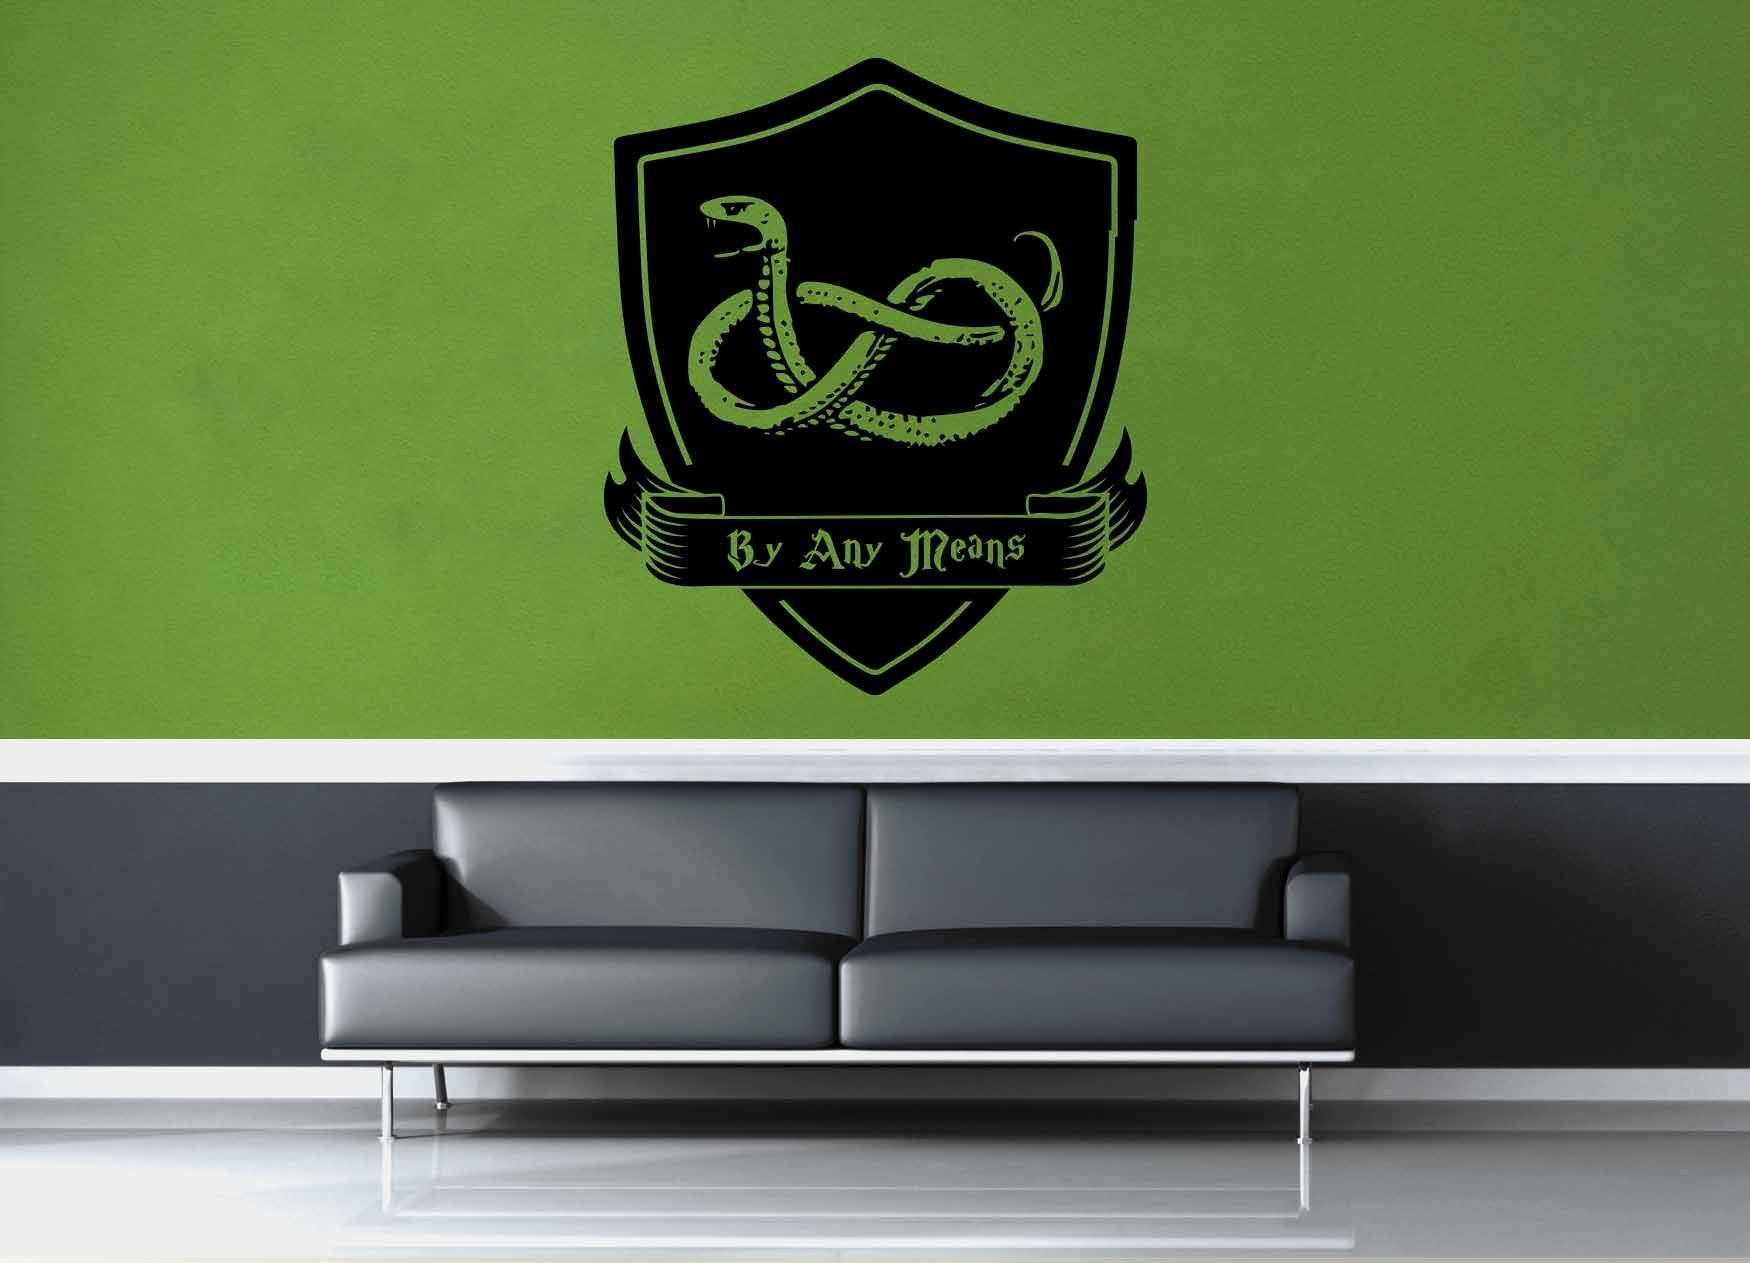 Slytherin Crest Harry Potter Wall Decal Geekerymade - Wall decals harry potter